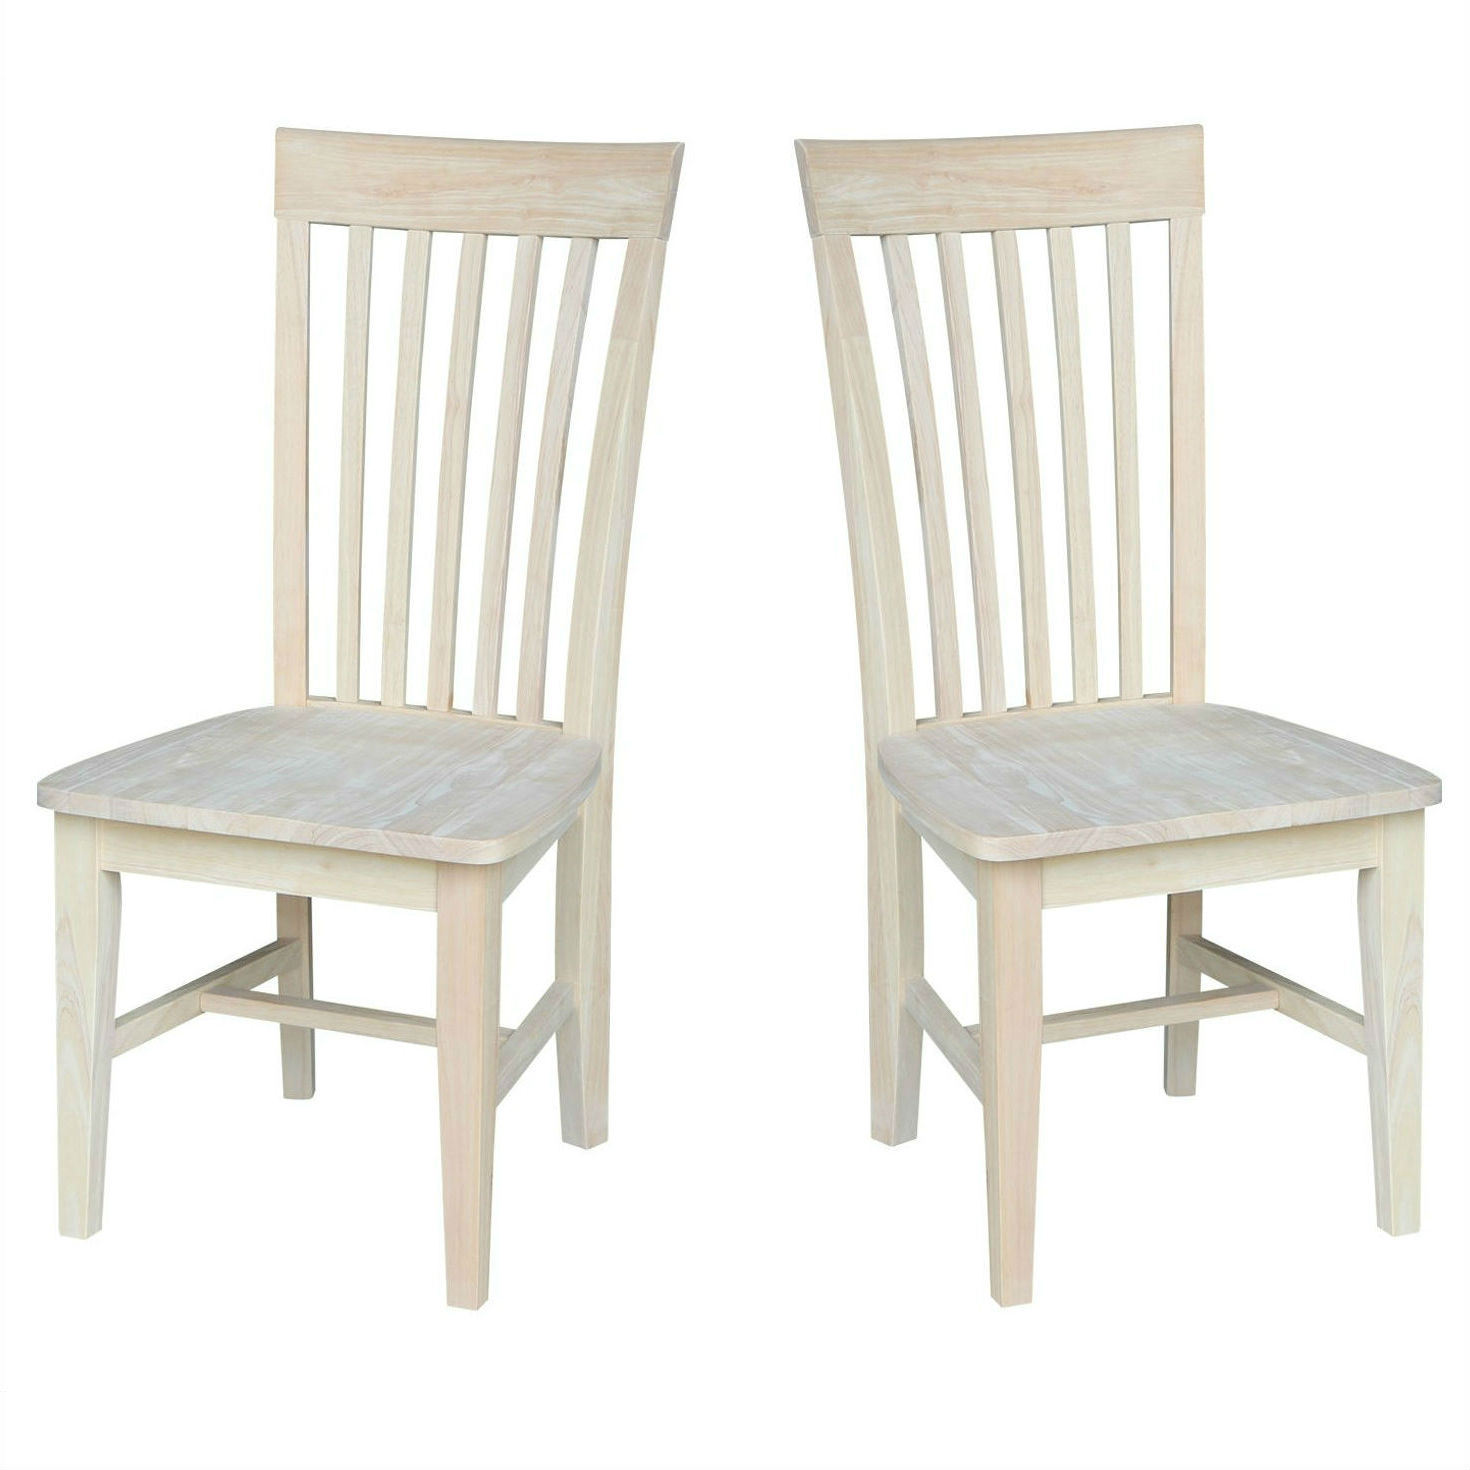 Set Of 2 Mission Style Unfinished Wood Dining Chair With High Back Fastfurnishings